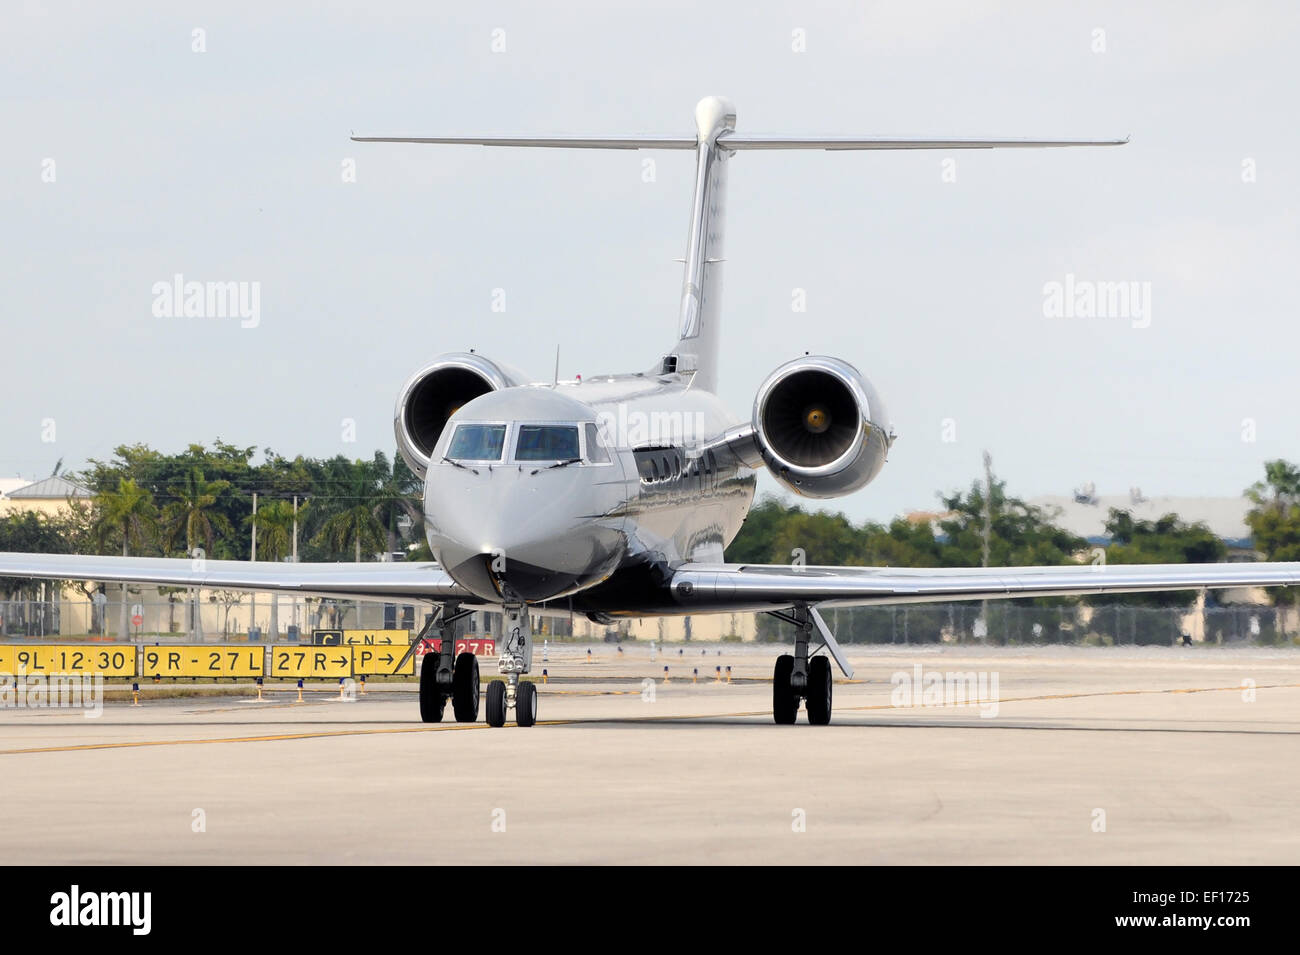 Luxury private jet taxiing on the ground - Stock Image